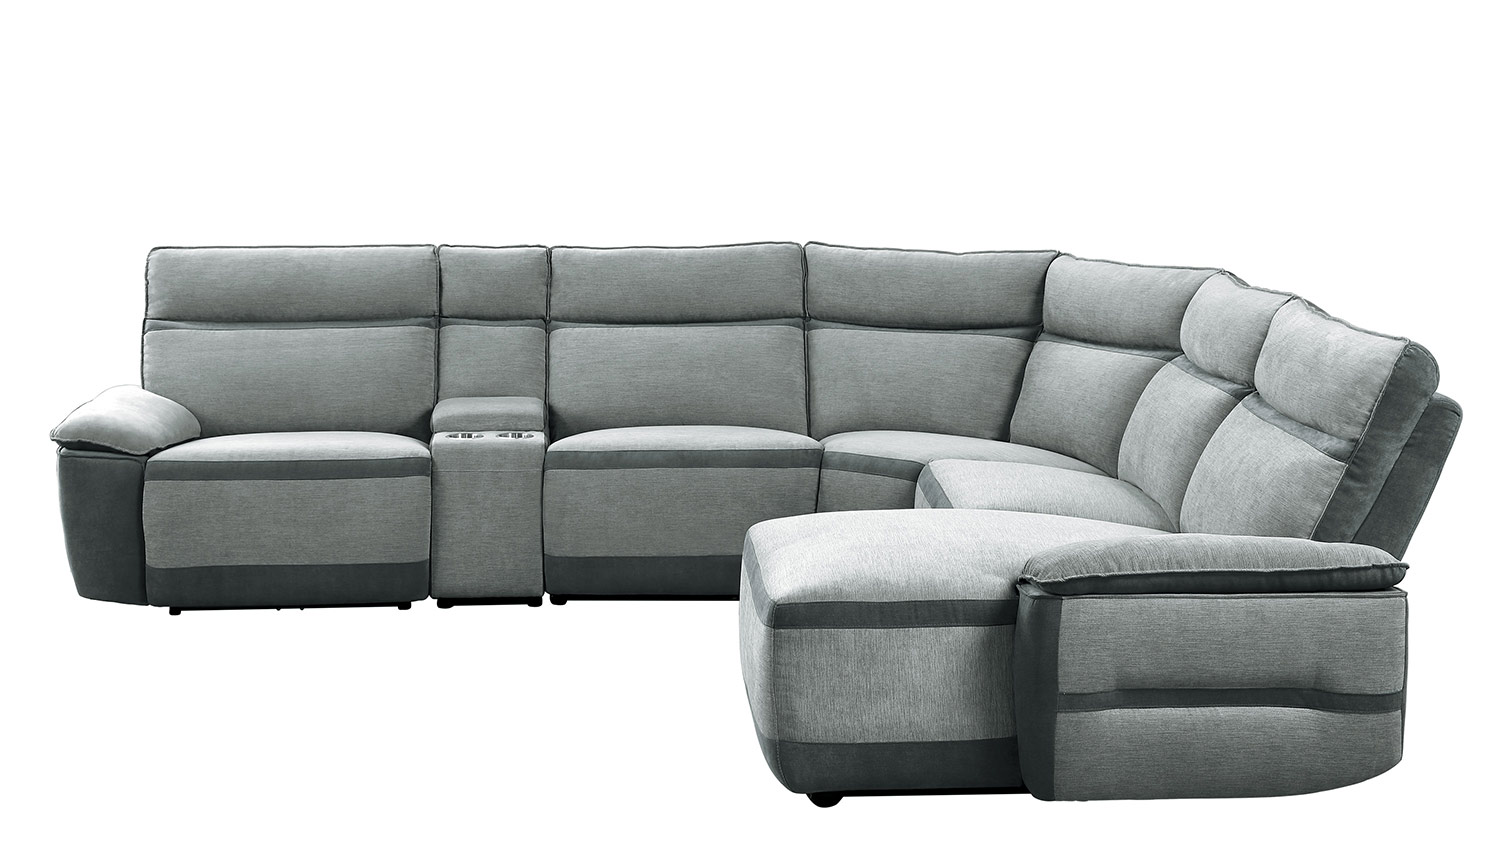 Homelegance Hedera Power Reclining Sectional Sofa Set - Gray